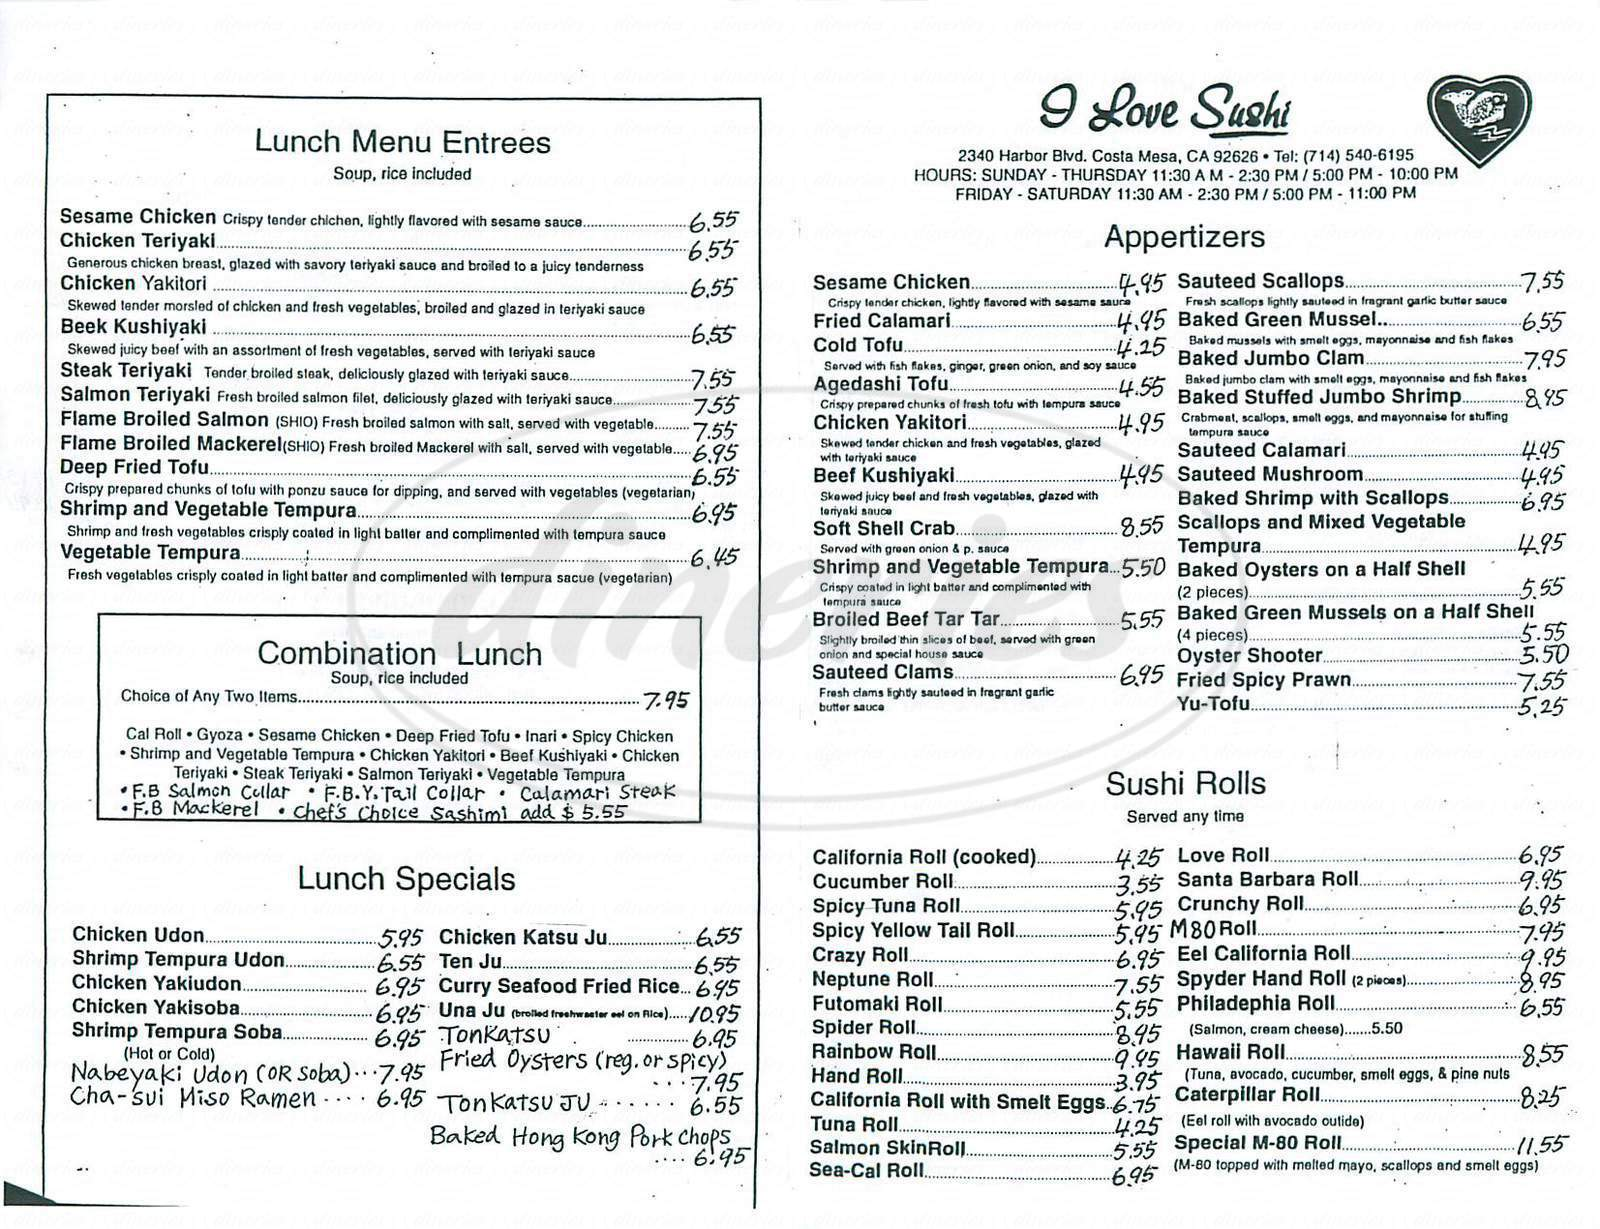 menu for I Love Sushi